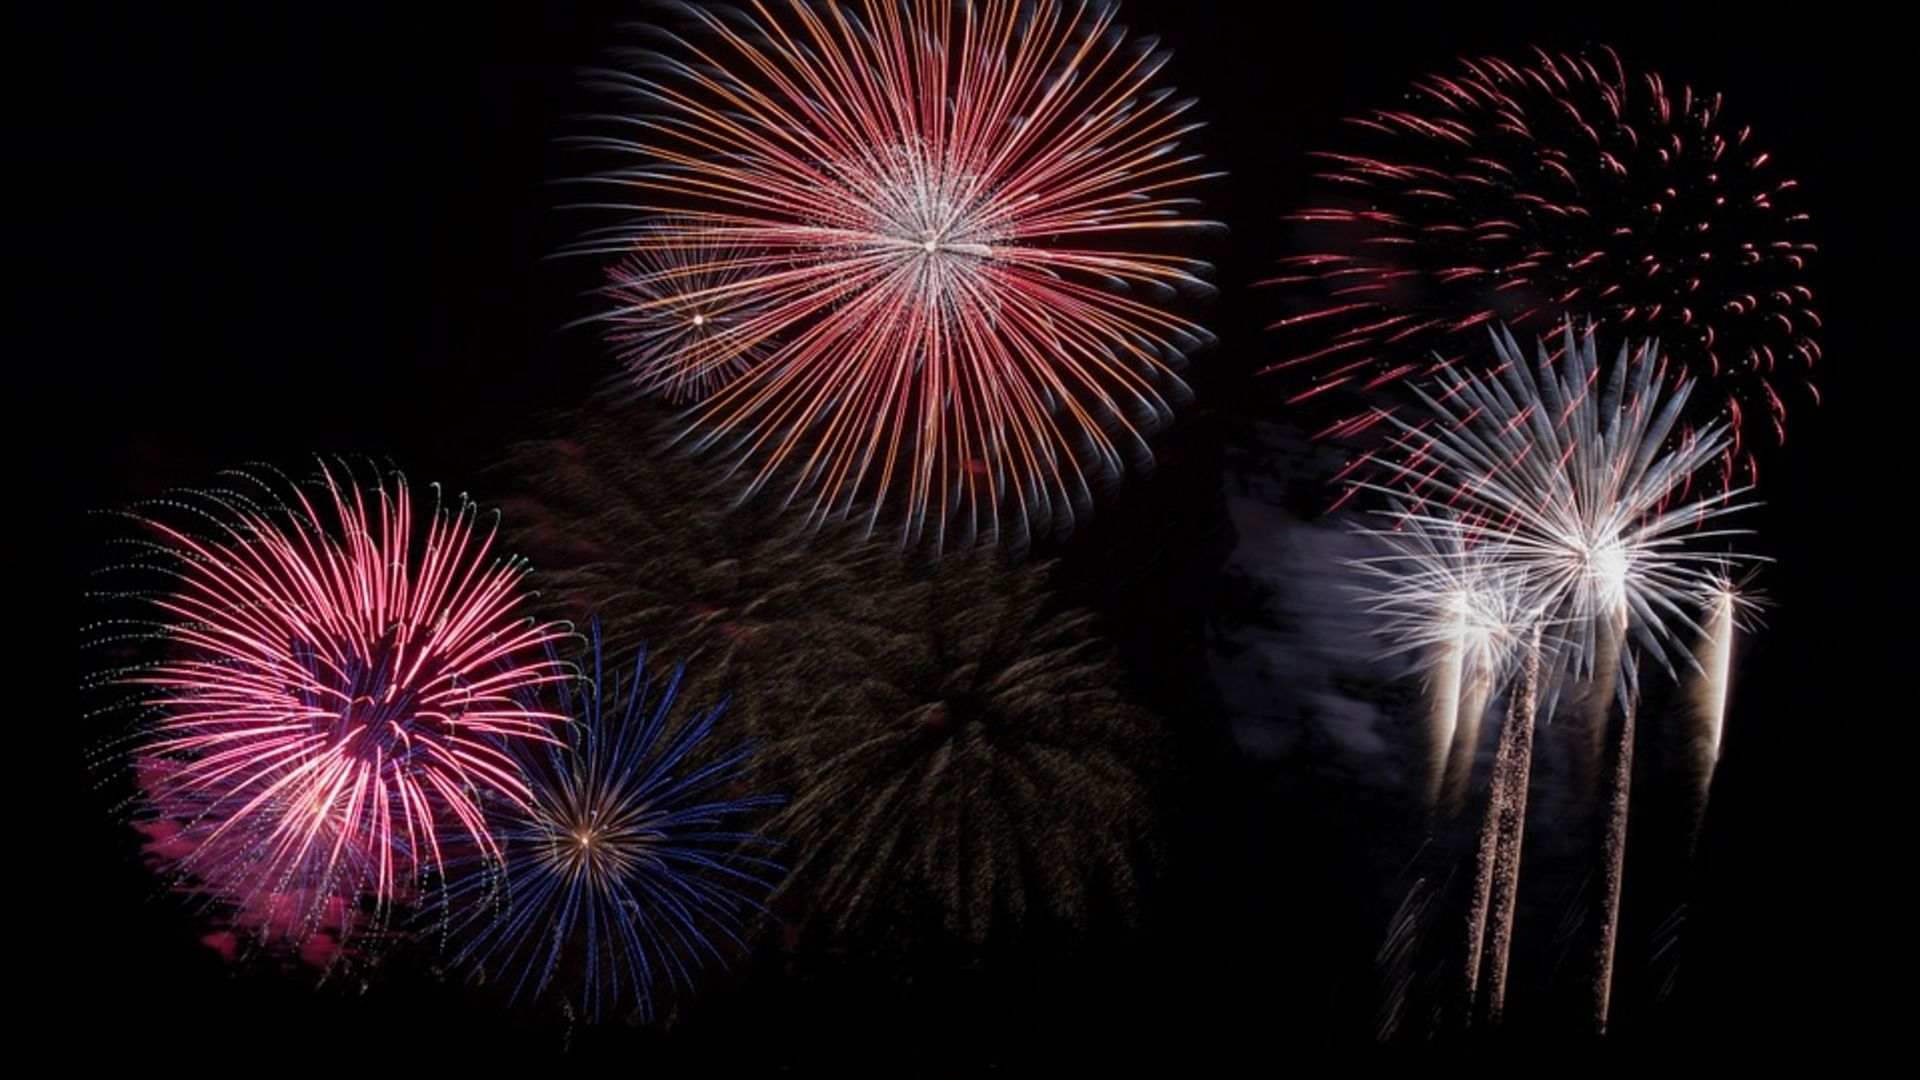 8 Amazing Fireworks Displays For The Fourth Of July